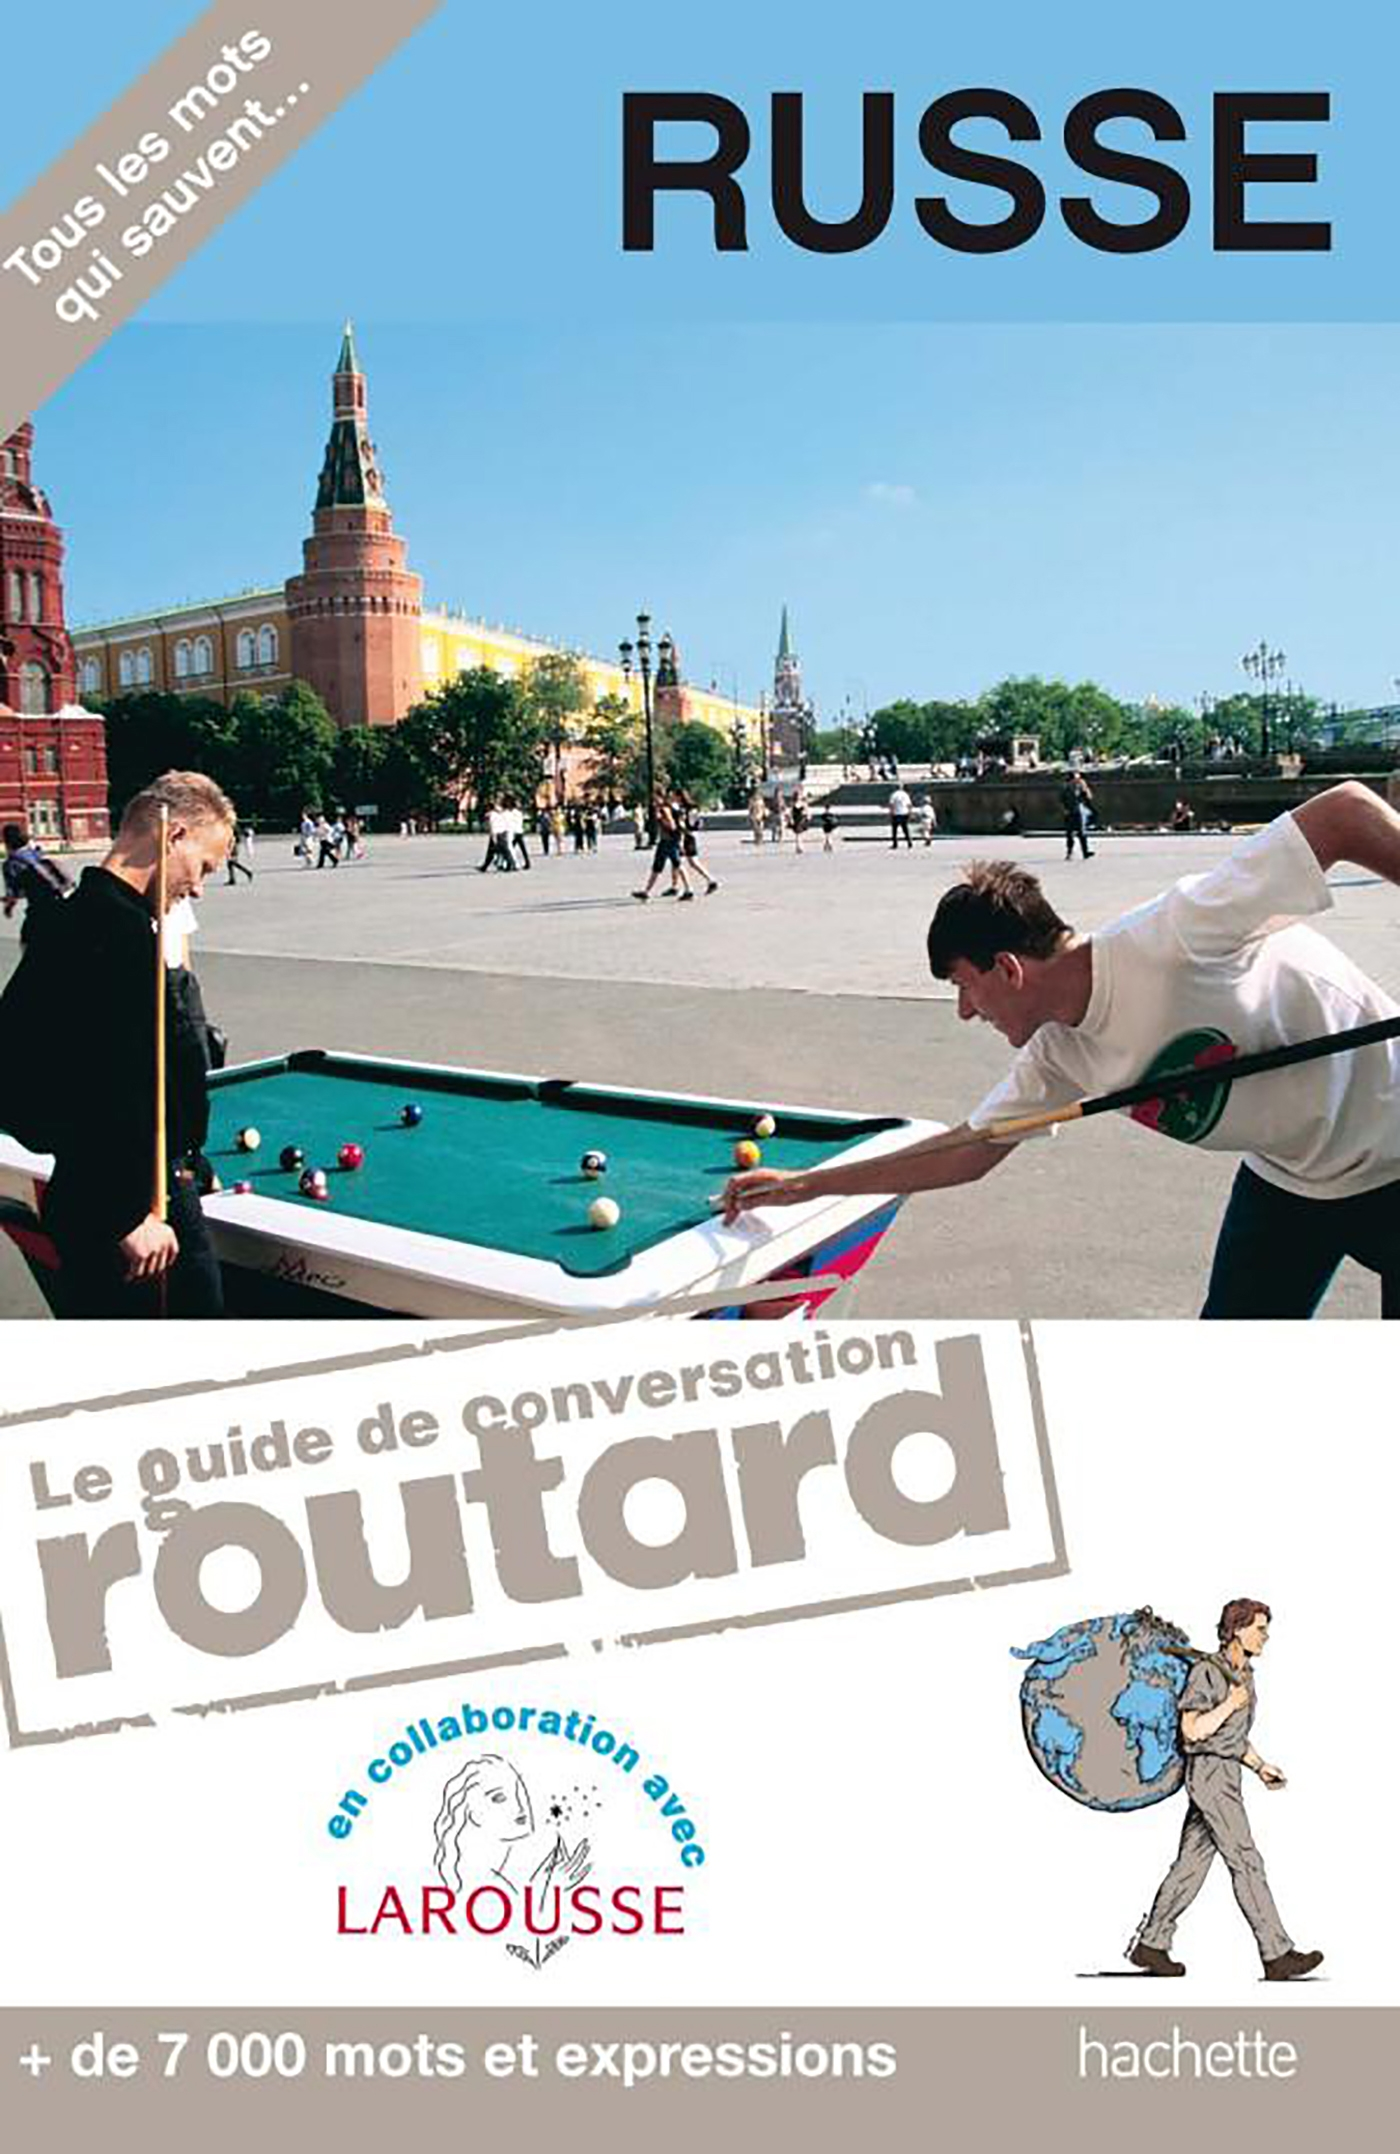 Russe  le guide de conversation Routard